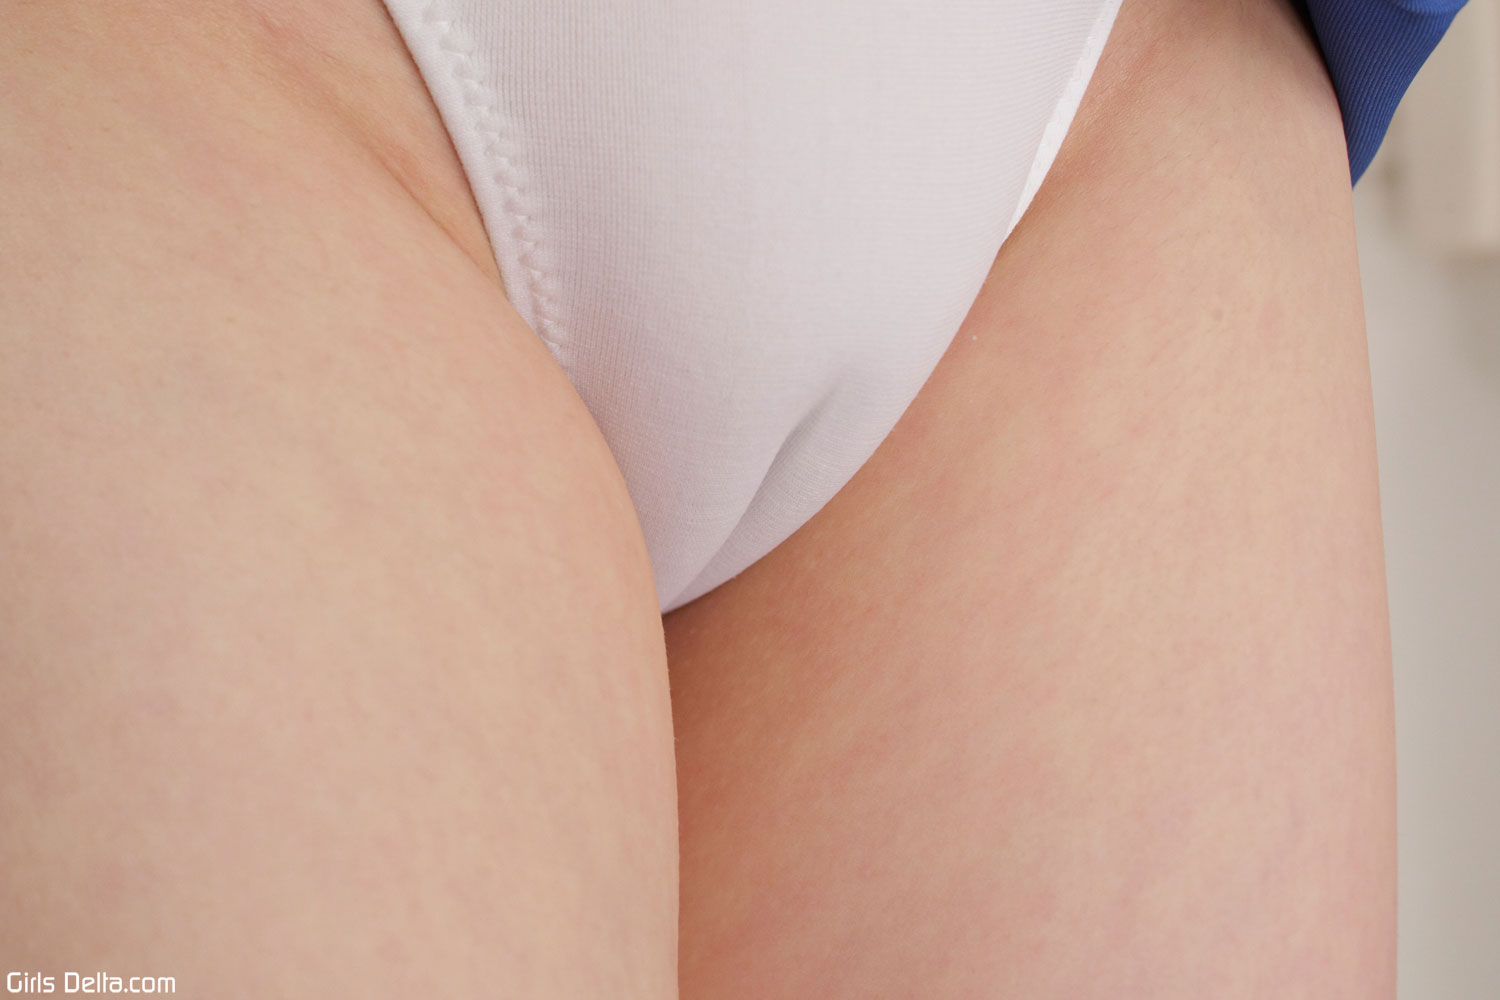 Shaved Camel Toe In White Panties Of Sasahara Is Perfect